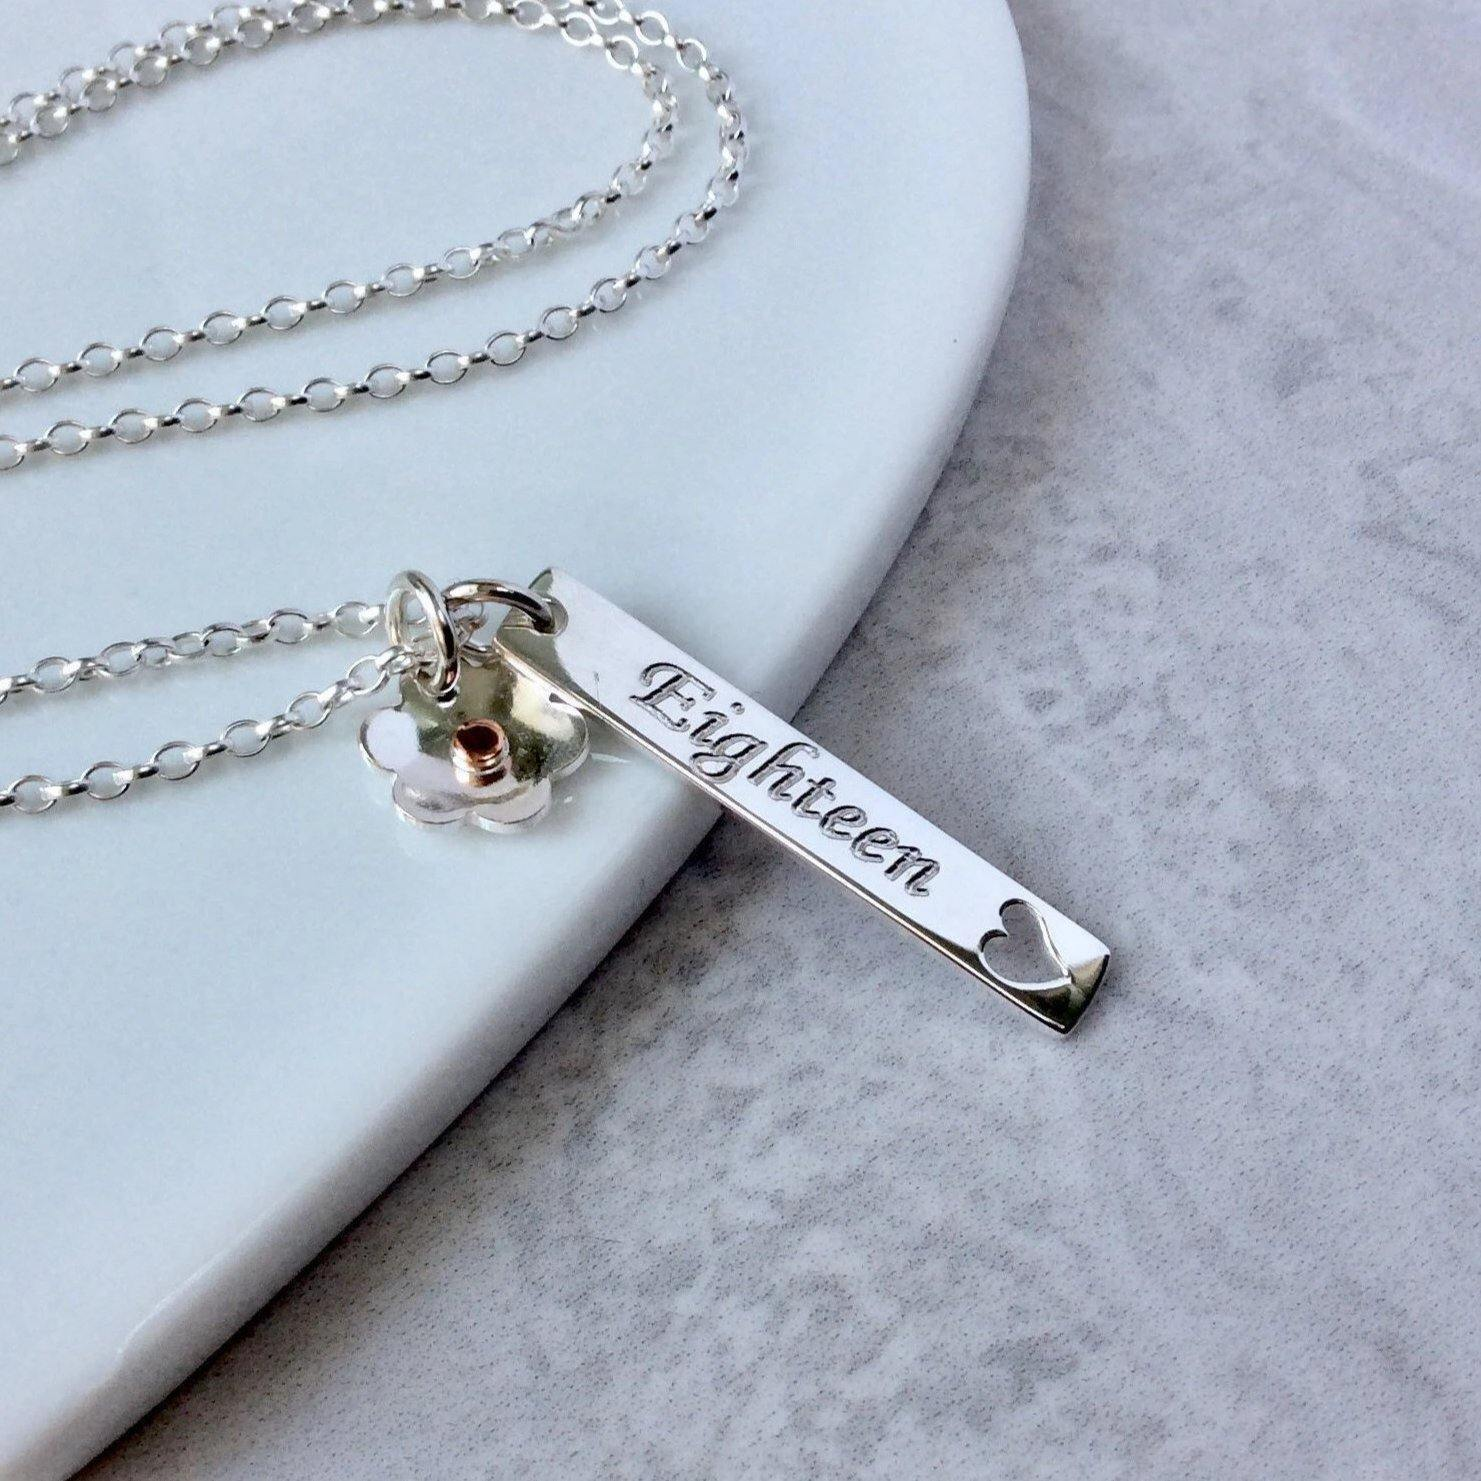 18th birthday gift, bar pendant personalised in sterling silver with small flower charm